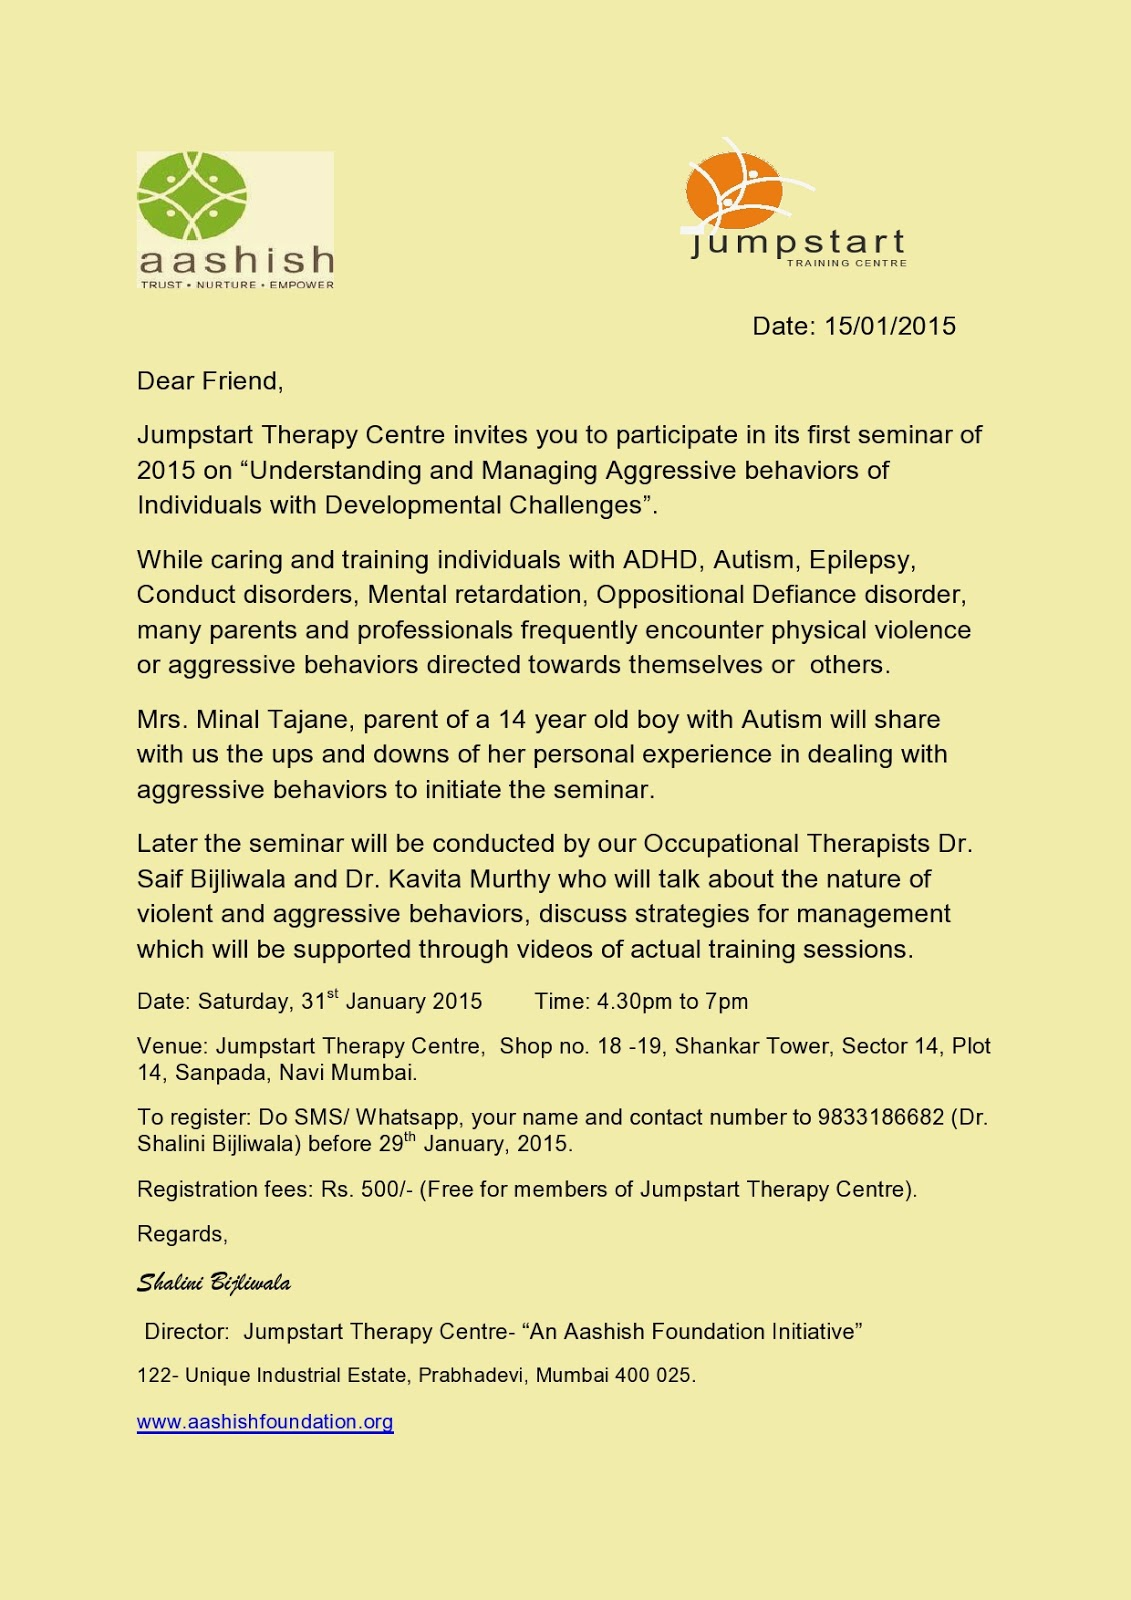 The Mumbai Branch Of All India Occupational Therapist's